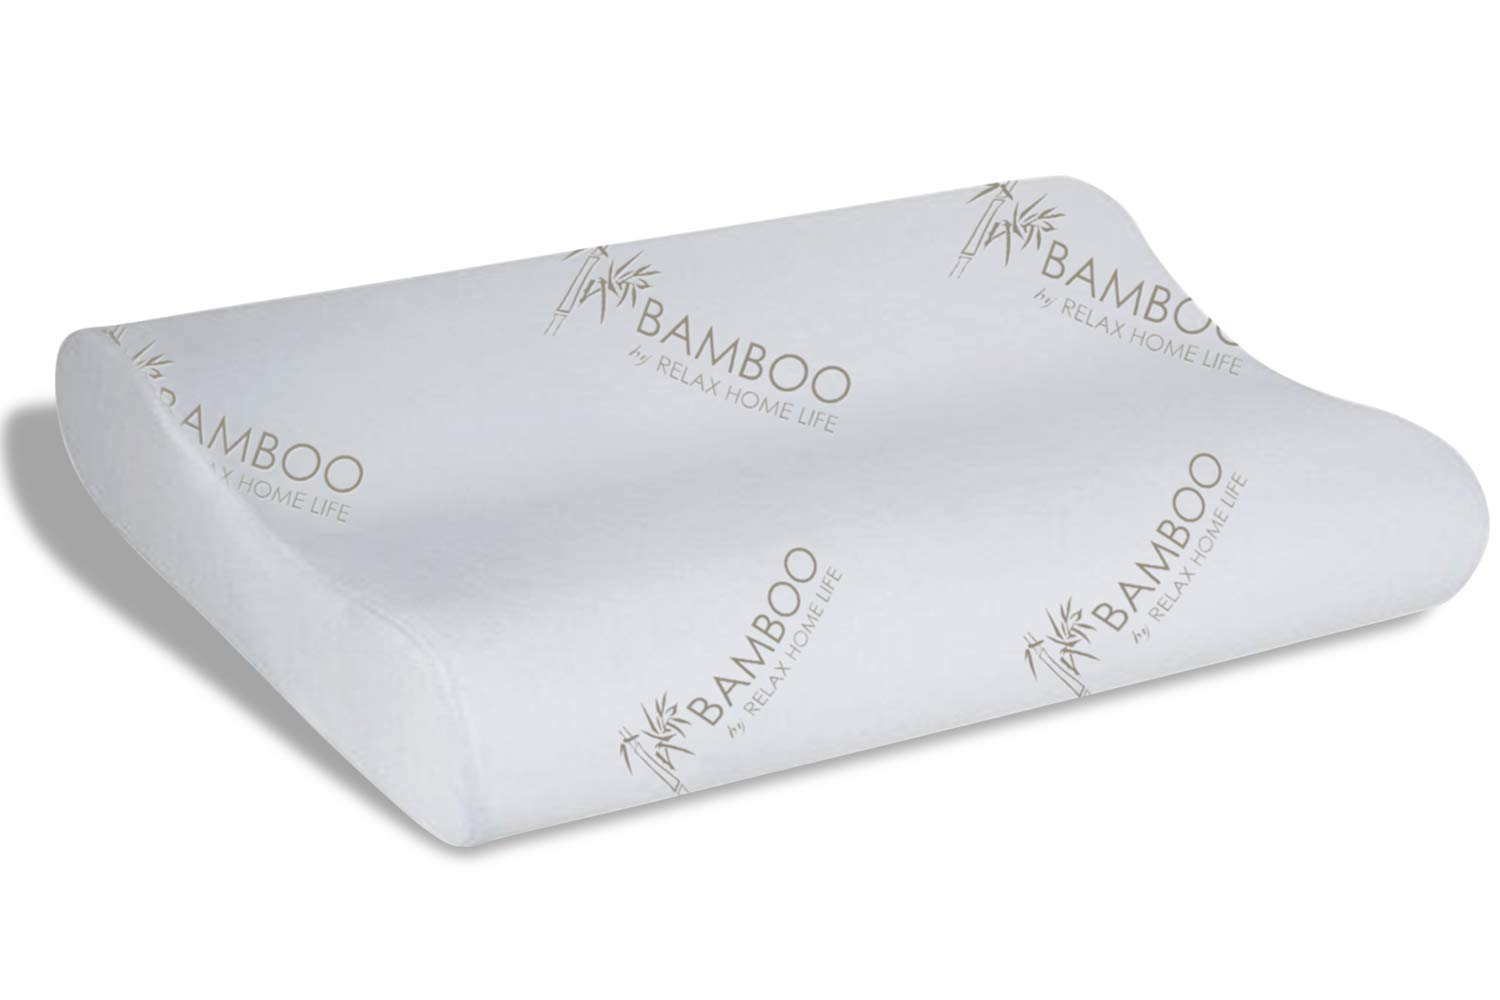 Relax Home Life Cervical Contour Memory Foam Bamboo Pillow | Stay Cool Removable Cover by Bamboo (King 14.5'' x 28'')